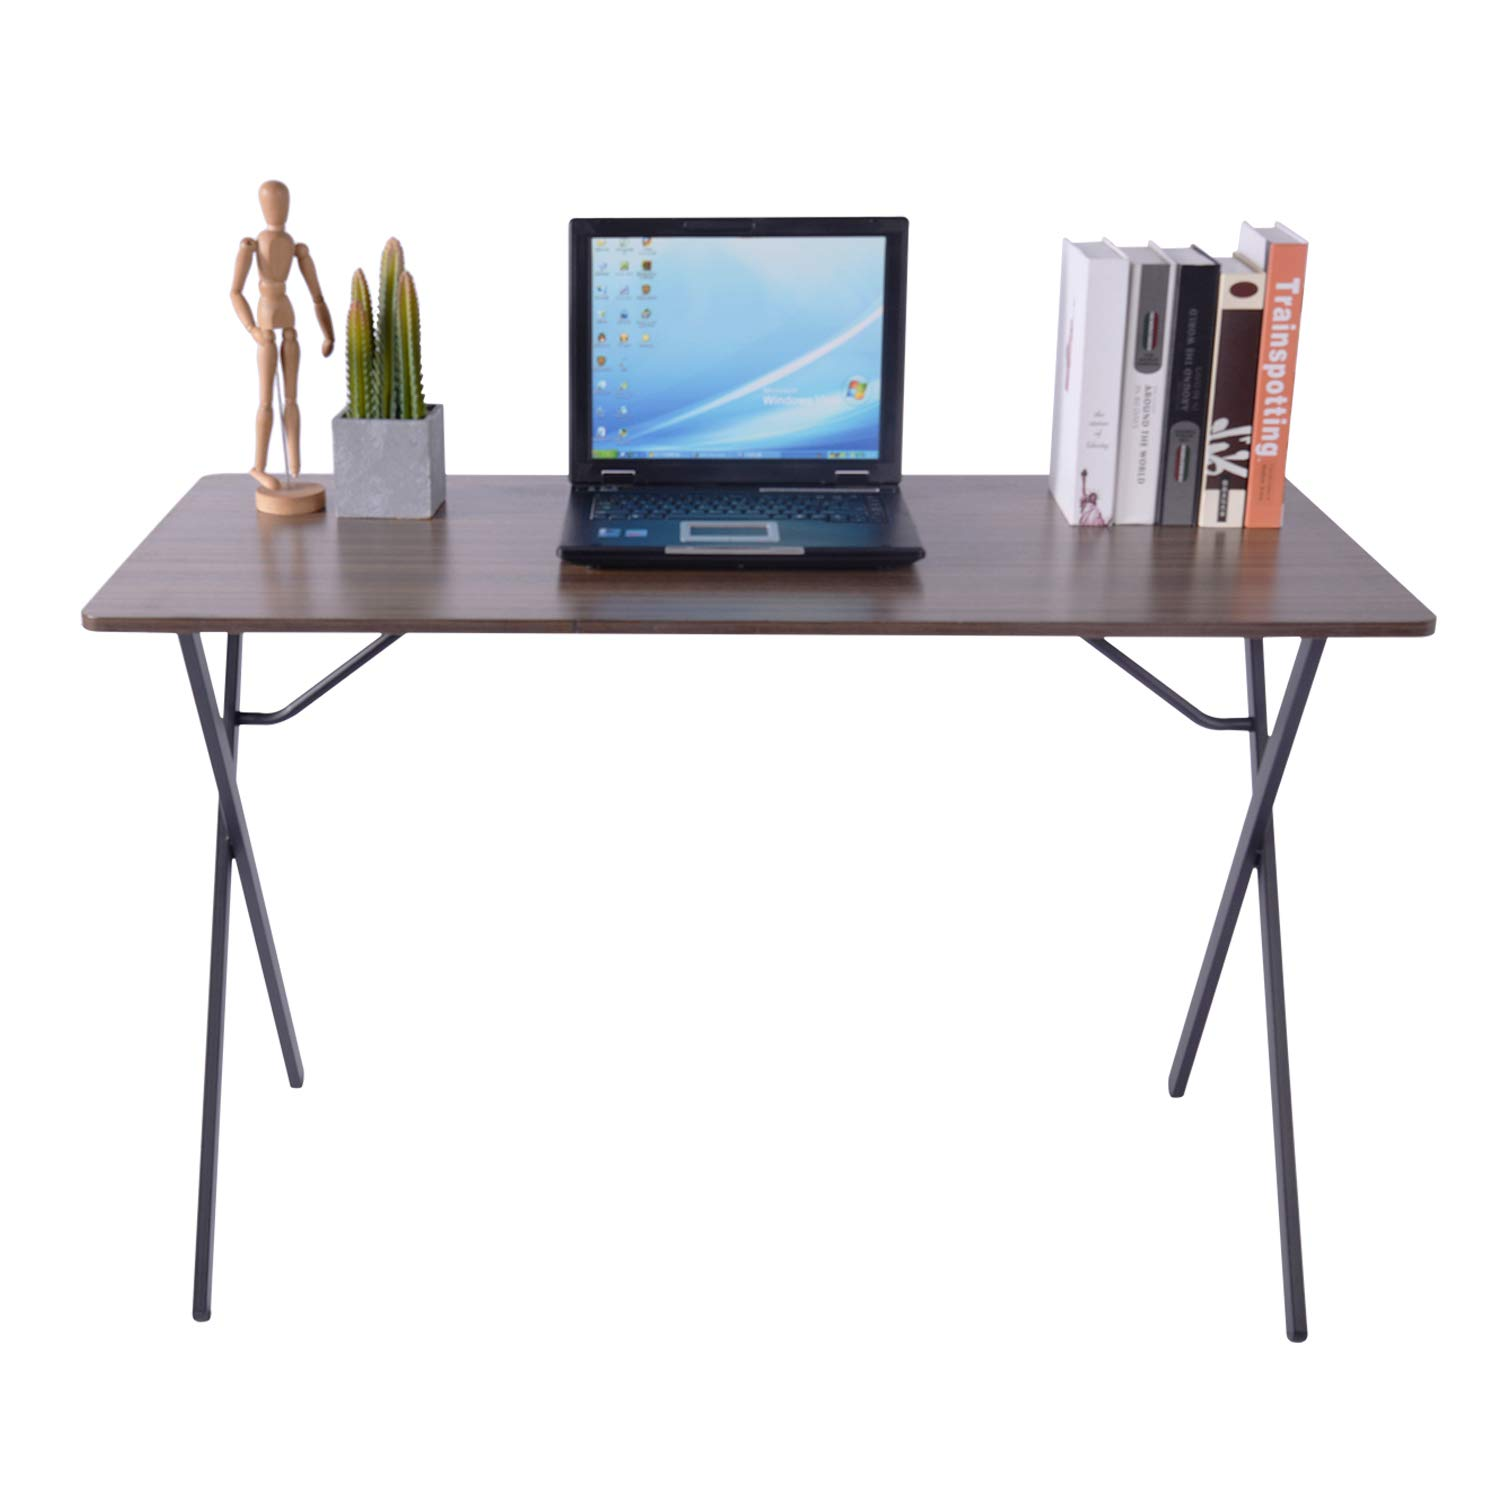 GreenForest Computer Desk, 47'' Large Desktop Simple Writing Desk Workstation for Home Office, Easy Assembly, Walnut by GreenForest